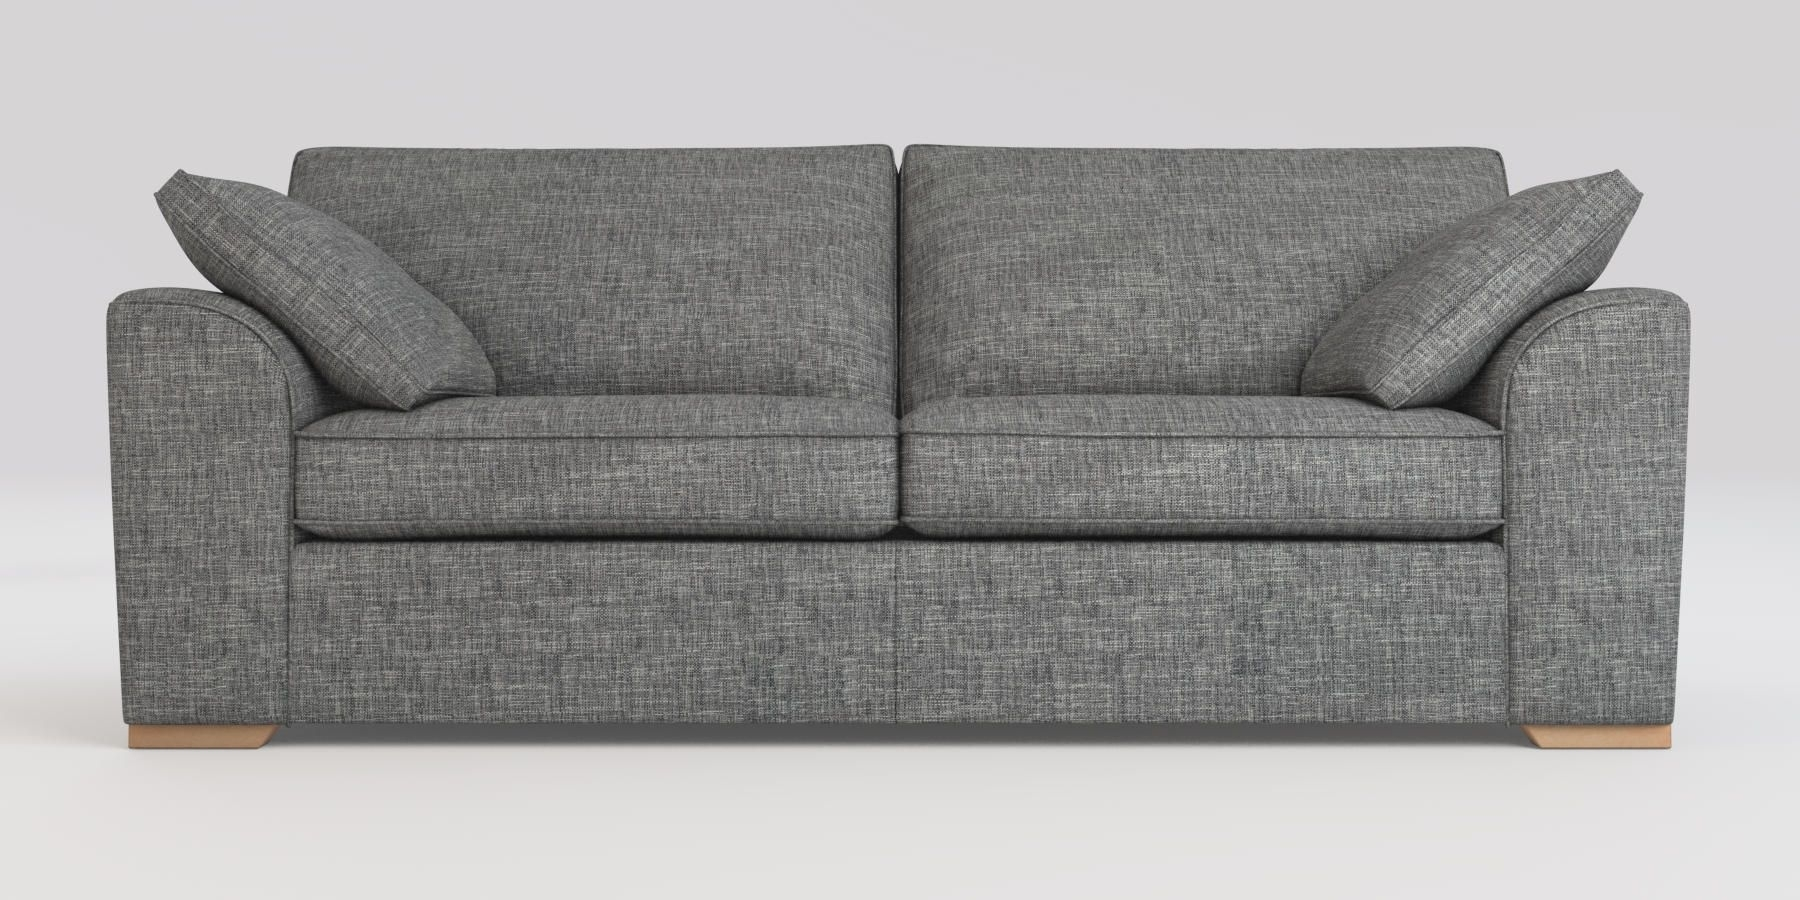 Buy Stamford With Storage Large Sofa (3 Seats) Boucle Weave Dark Regarding Declan 3 Piece Power Reclining Sectionals With Right Facing Console Loveseat (Image 6 of 25)